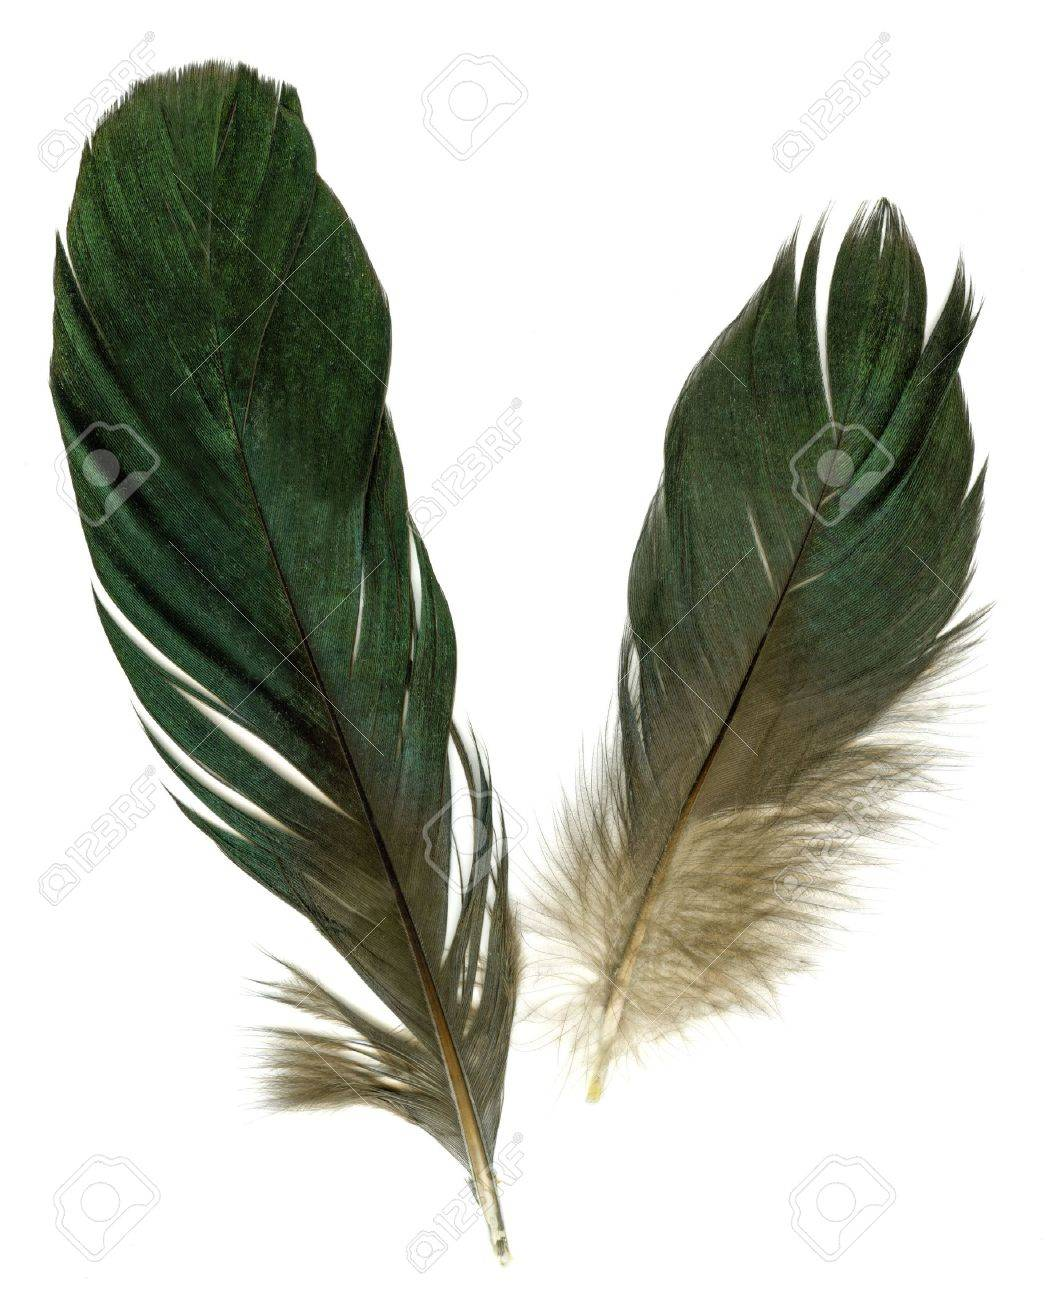 Two raven feathers on white background - 4286426